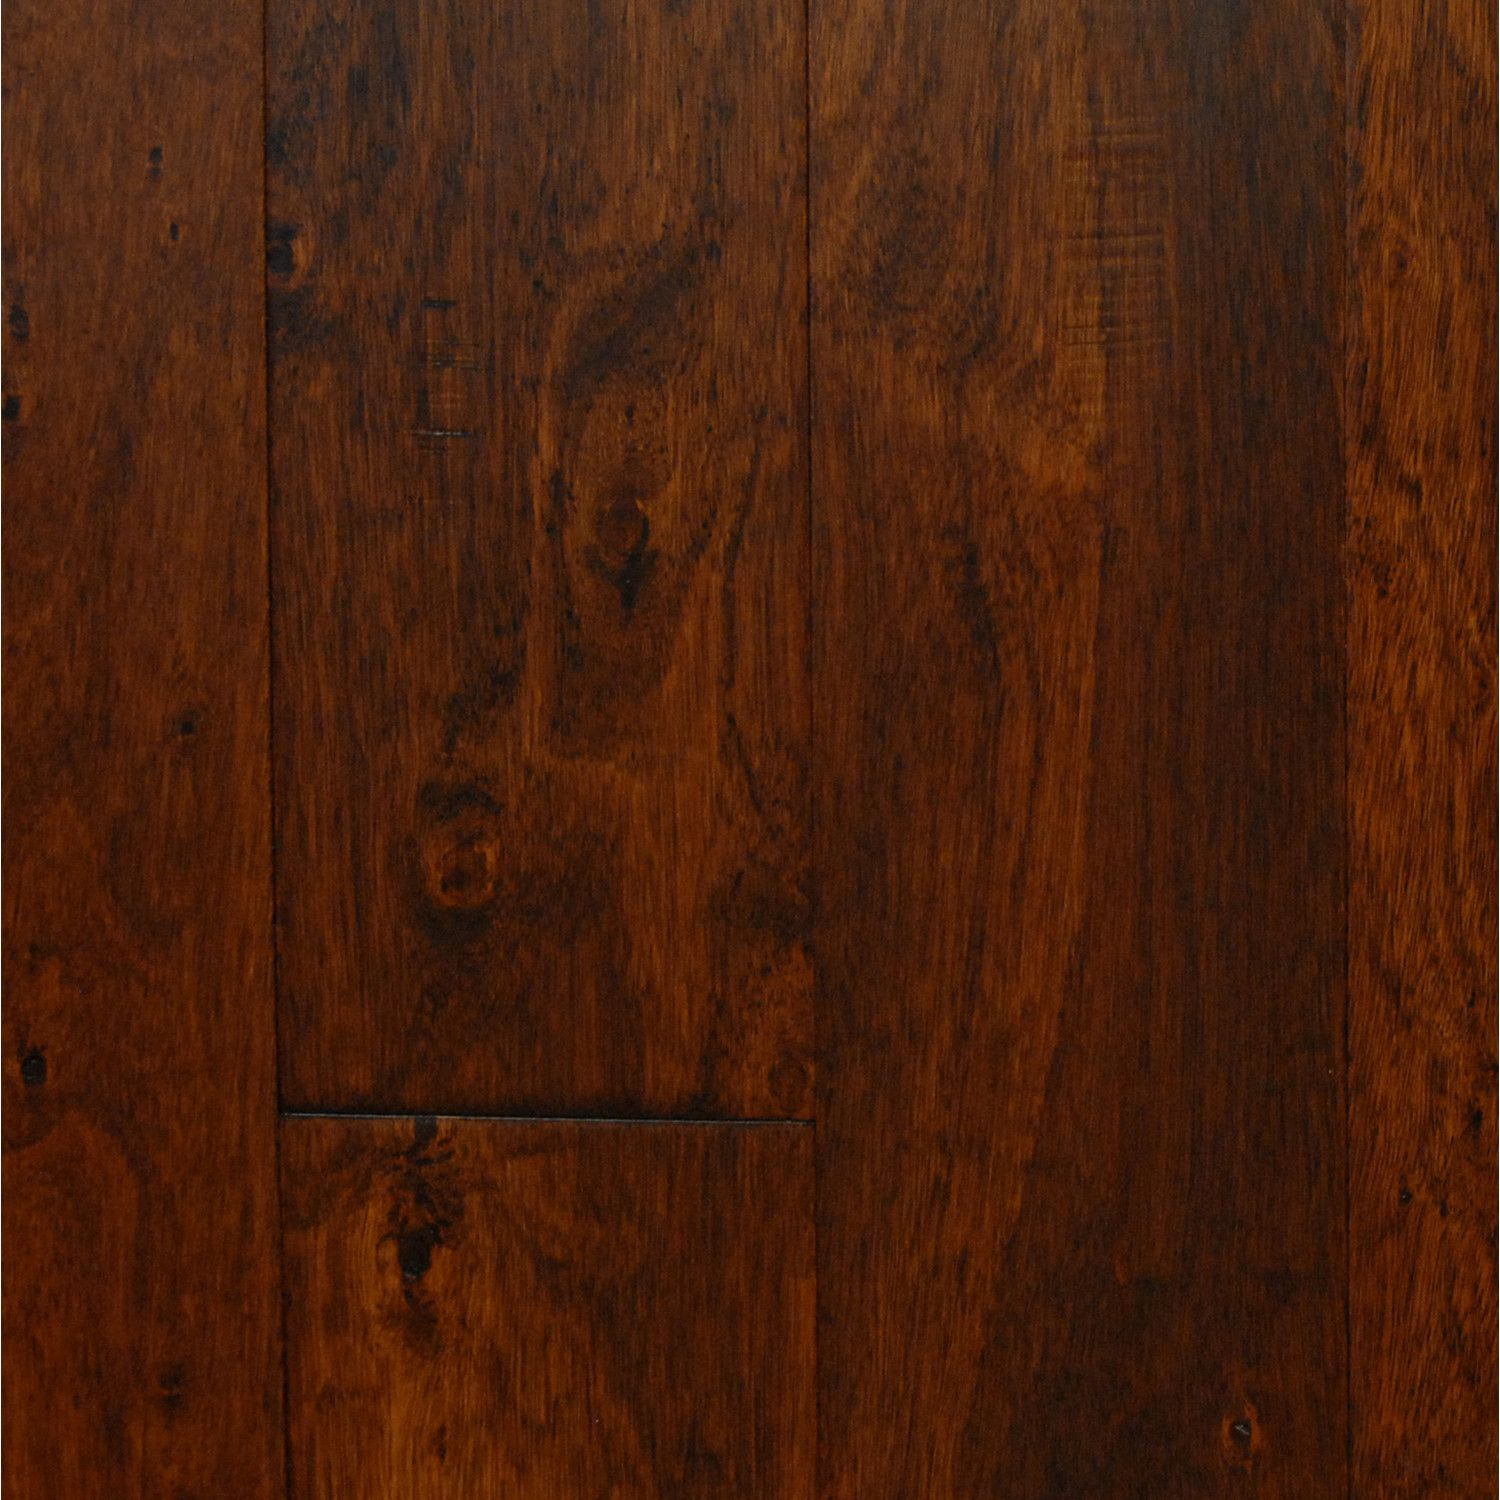 Aurora Hardwood 5 Quot Engineered Eucalyptus Hardwood Flooring In